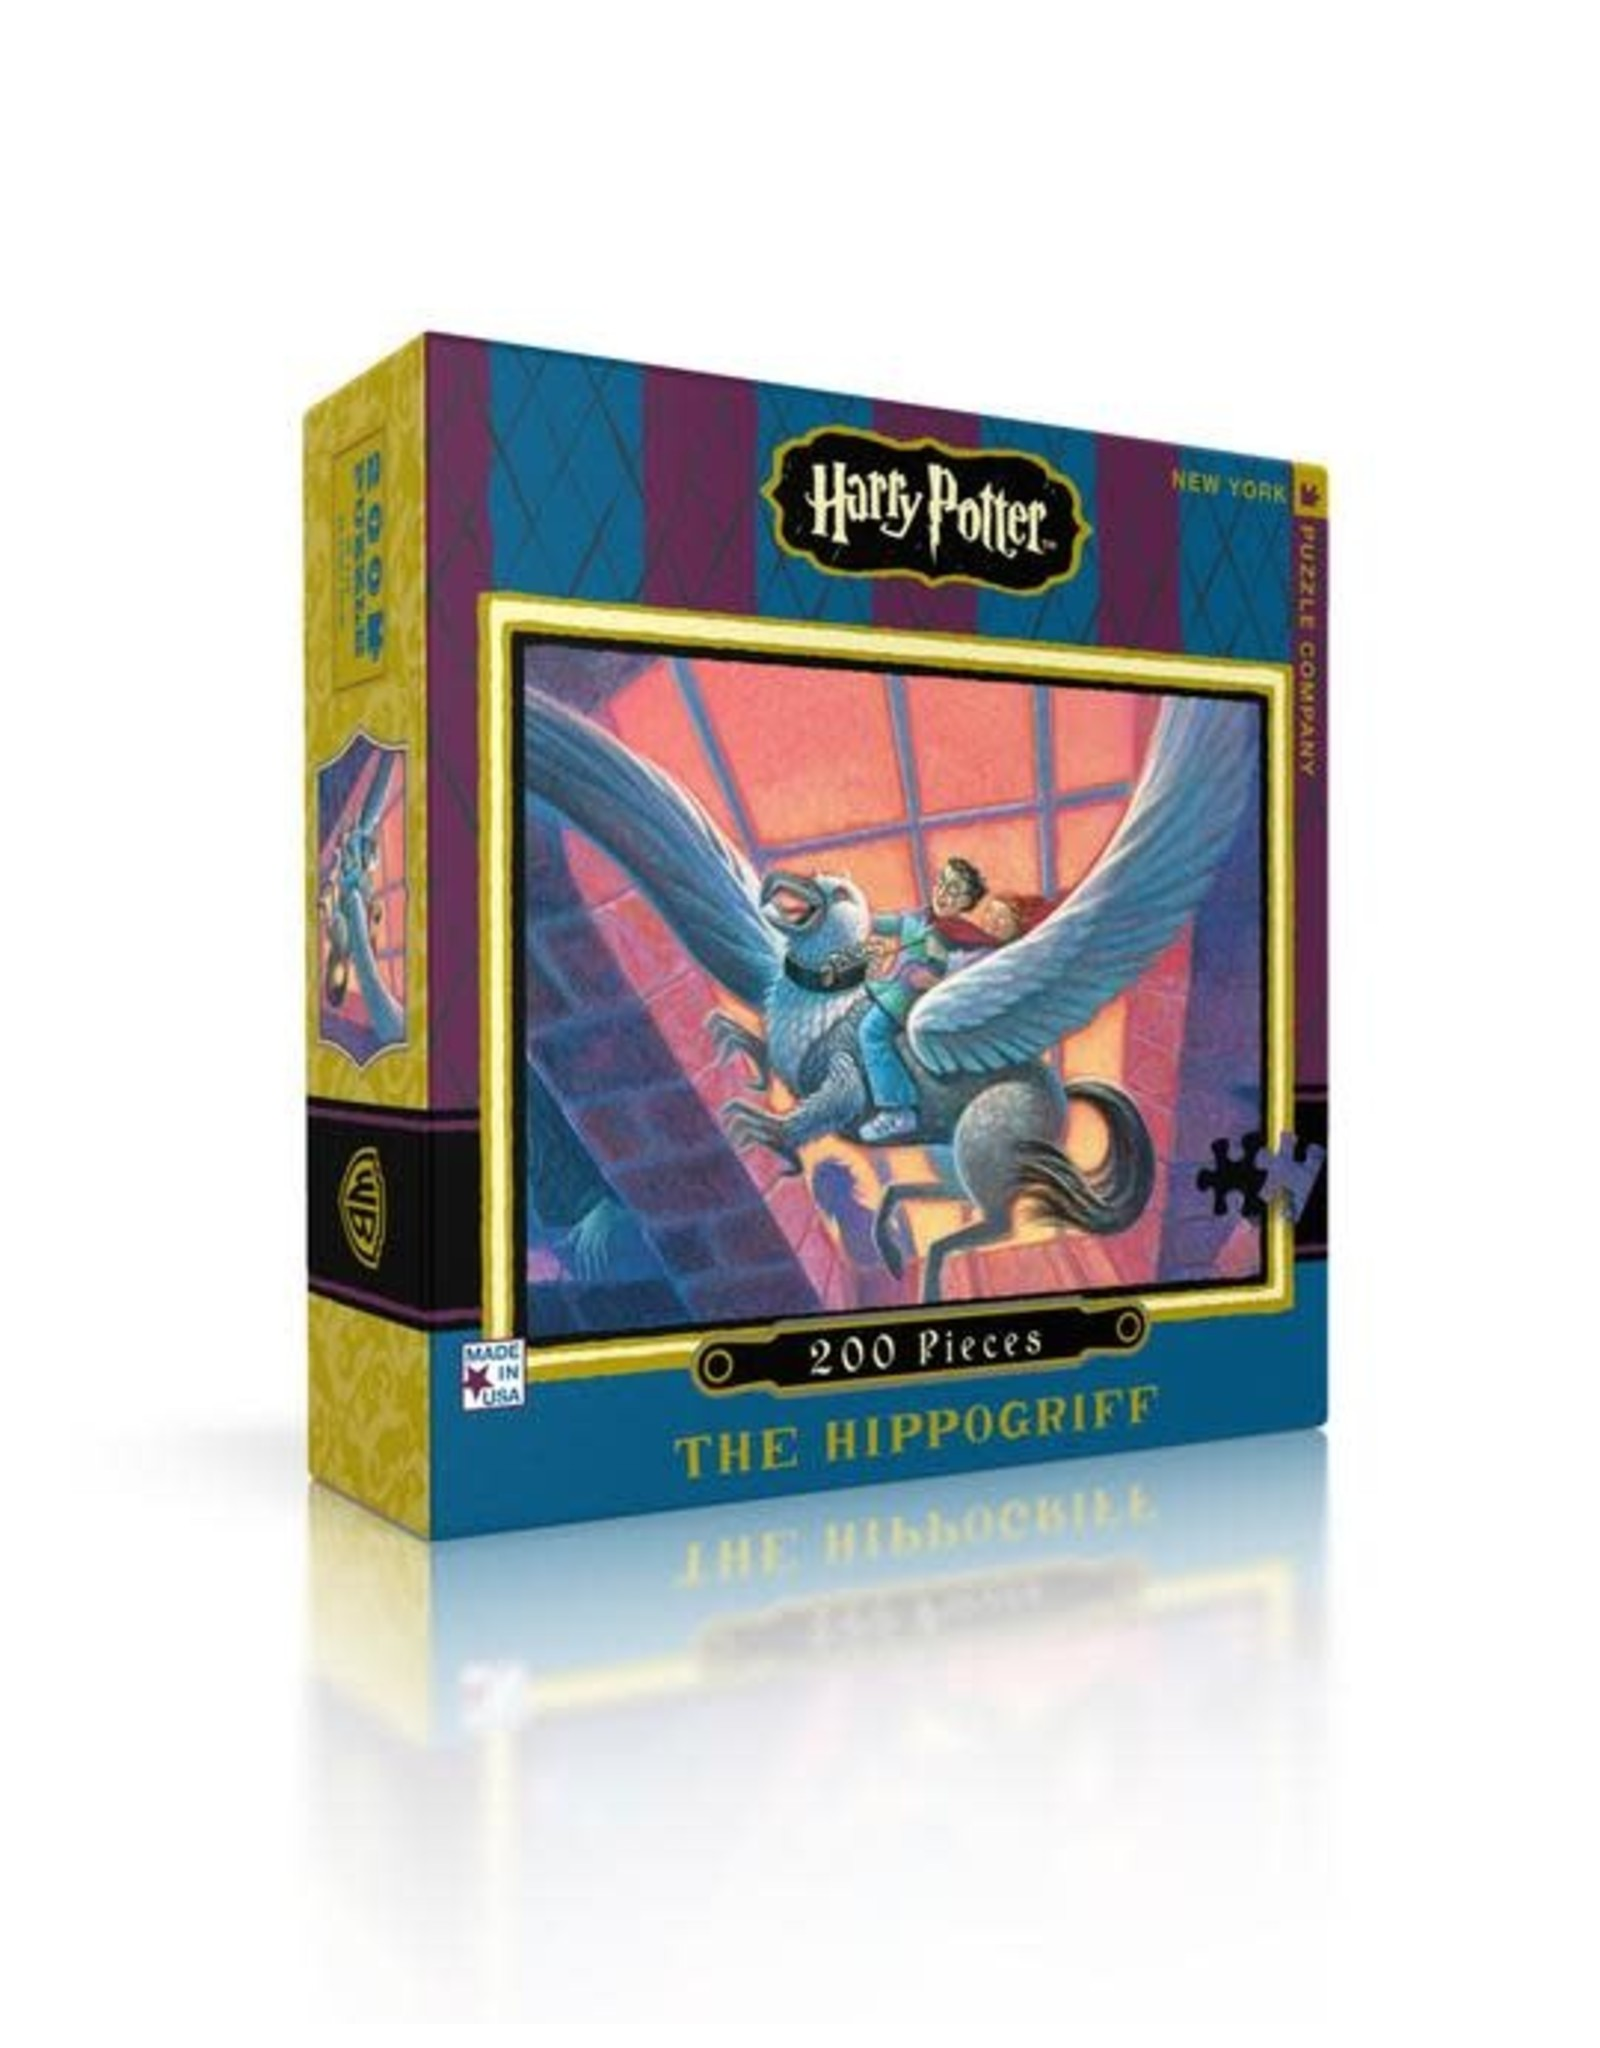 Harry Potter The Hippogriff (200 pieces)